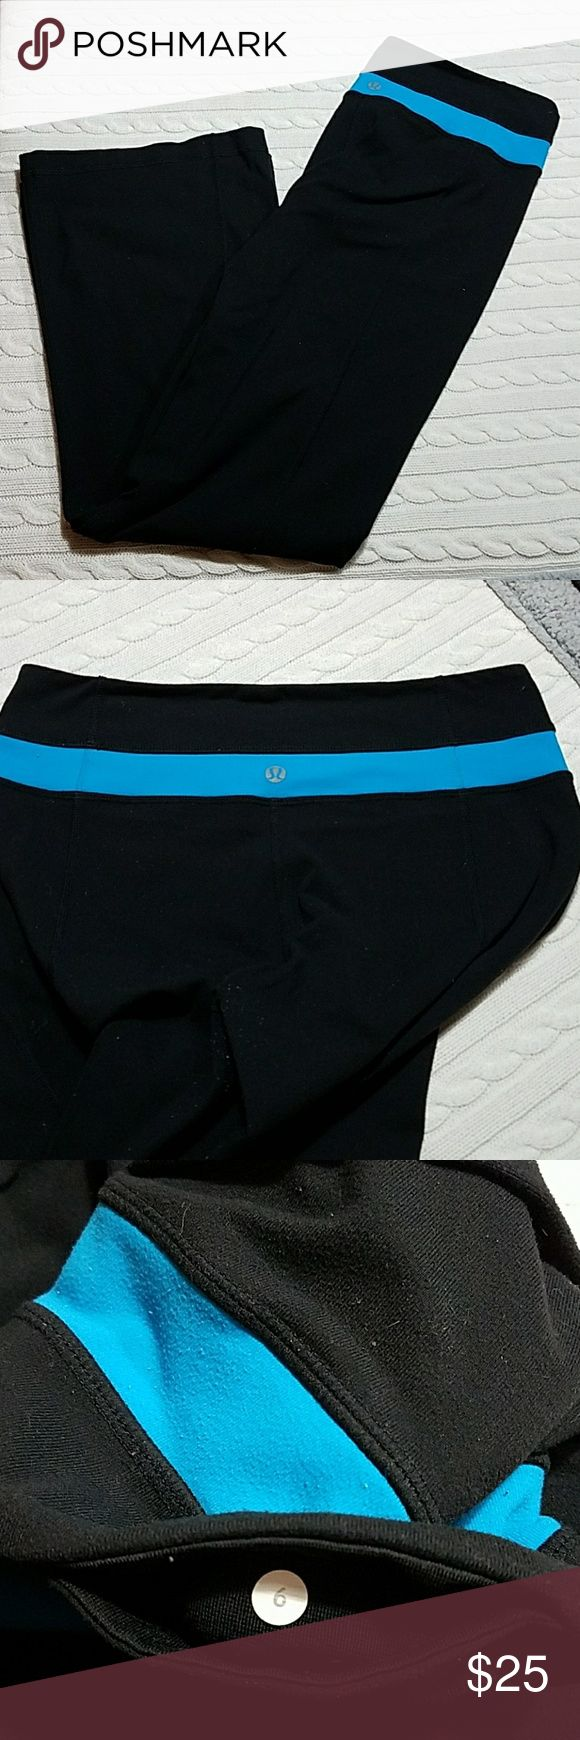 """Lululemon Yoga wide pant Sz 6 Black with turquoise stripe at waist. Pocket for key. Widest part of leg measure about 9"""" see pic 5. Some piling by crotch area see pic 7 and some from inside of the pant waist see pic 8. Very Comfortable pant. lululemon athletica Pants Leggings"""